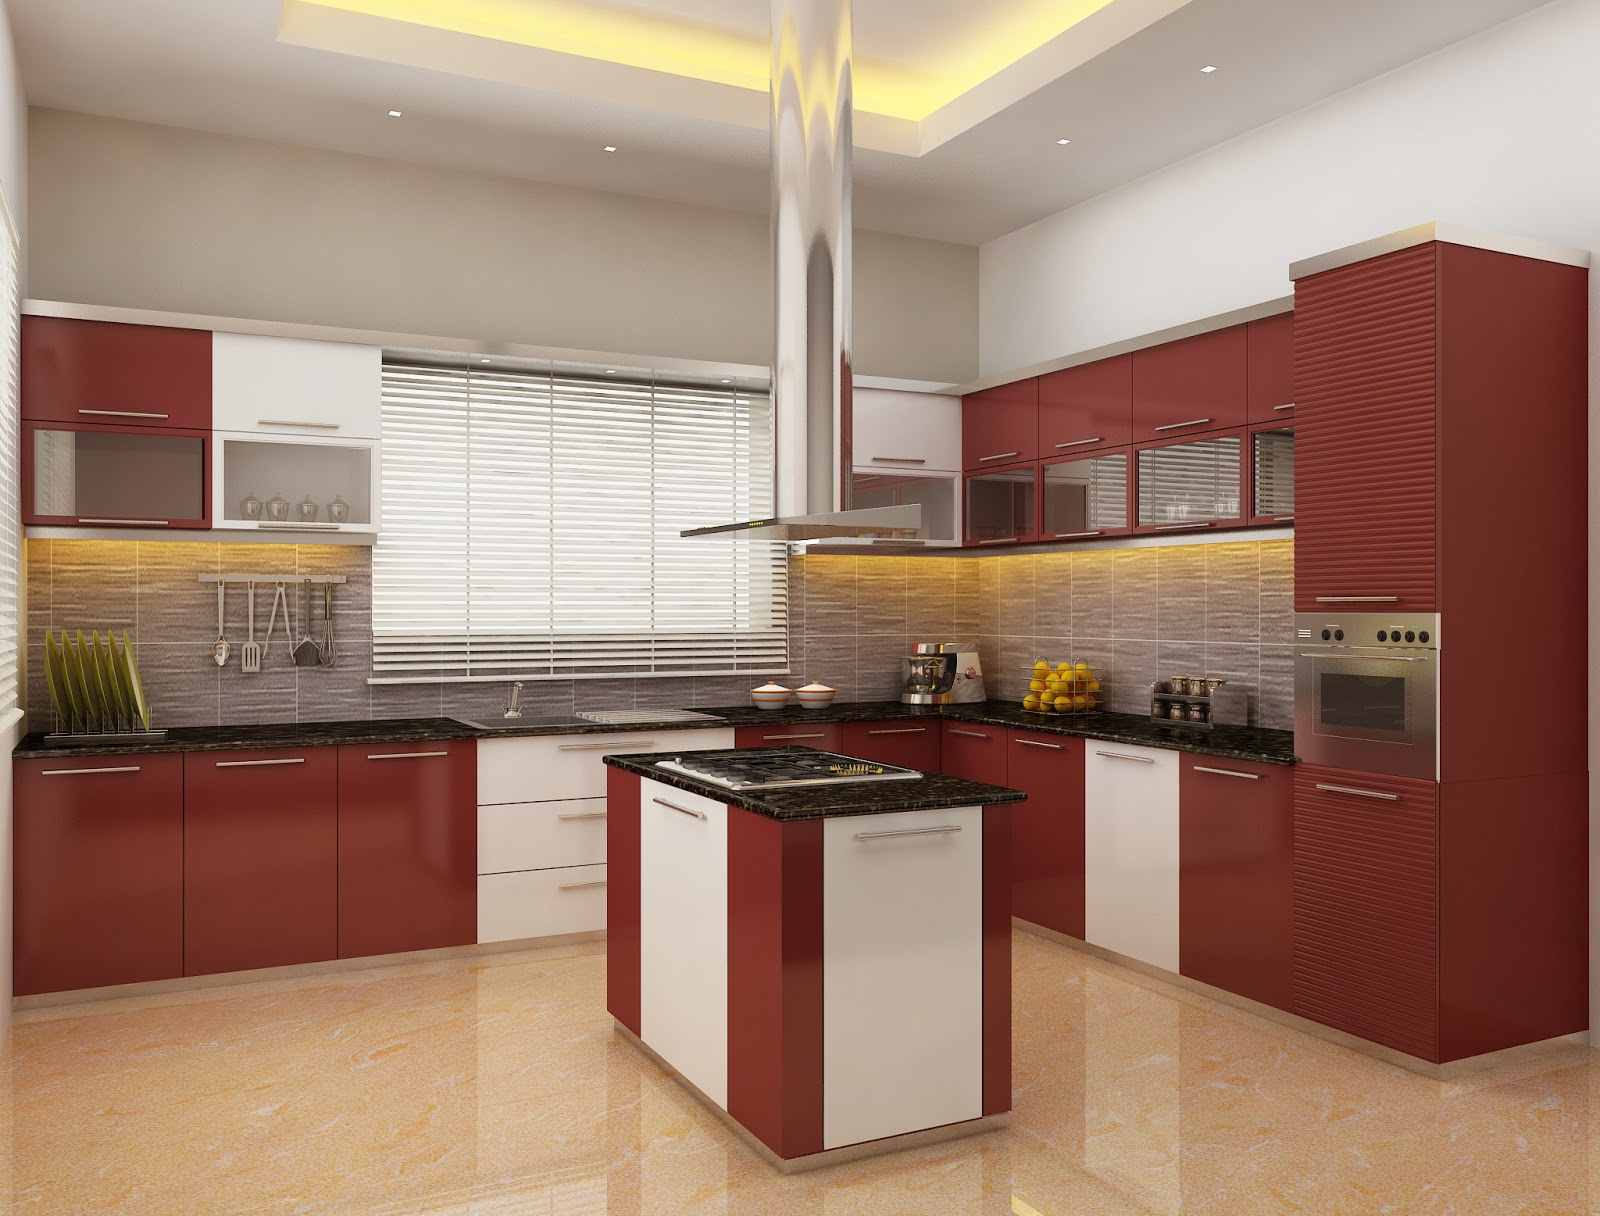 Modern kitchen in kerala style joy studio design gallery for Best modern kitchen design